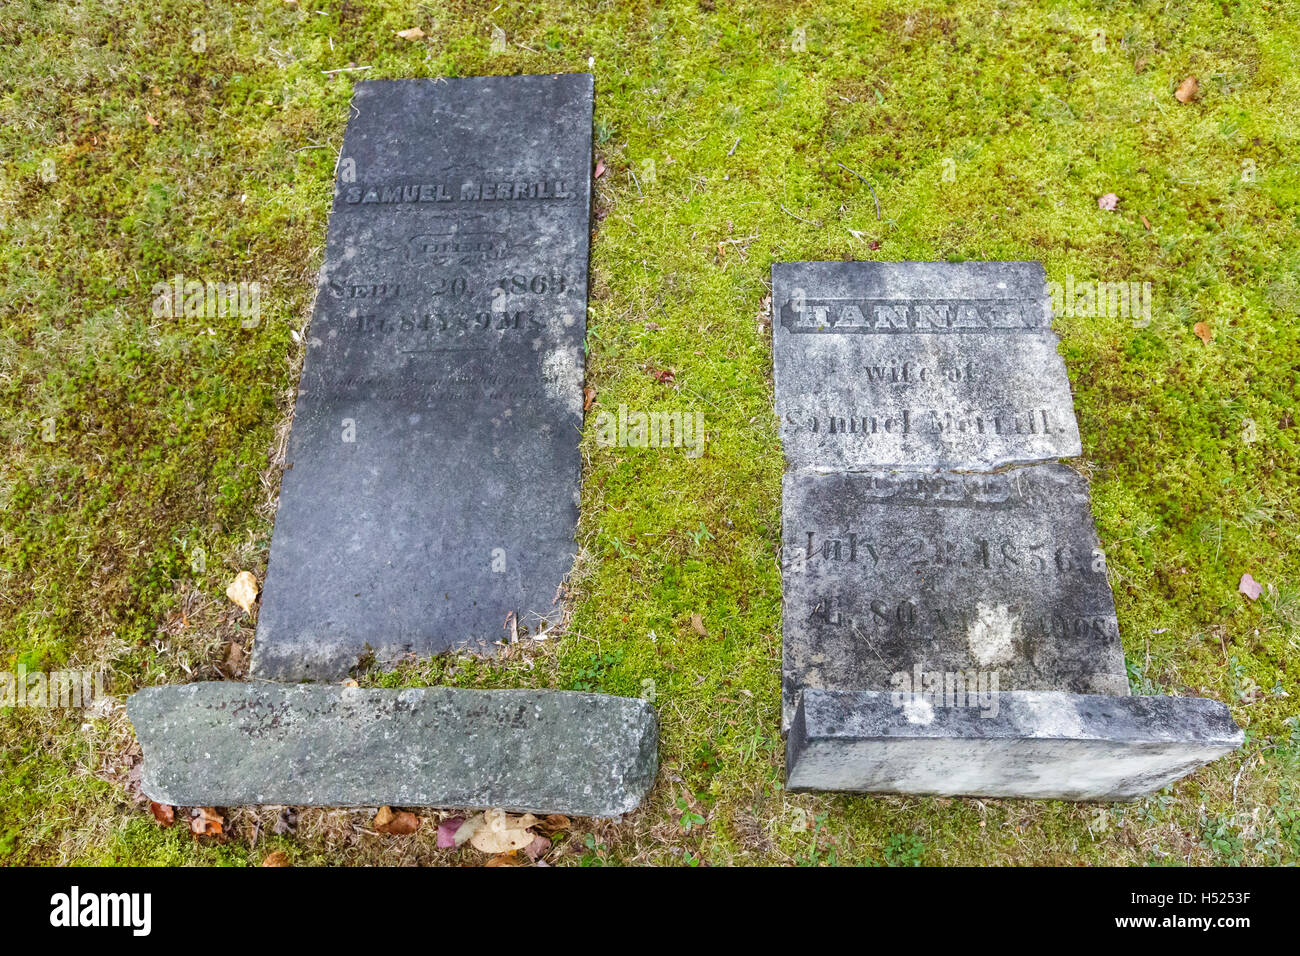 Breezy Point Point Road Cemetery in Warren, New Hampshire during the summer months. - Stock Image